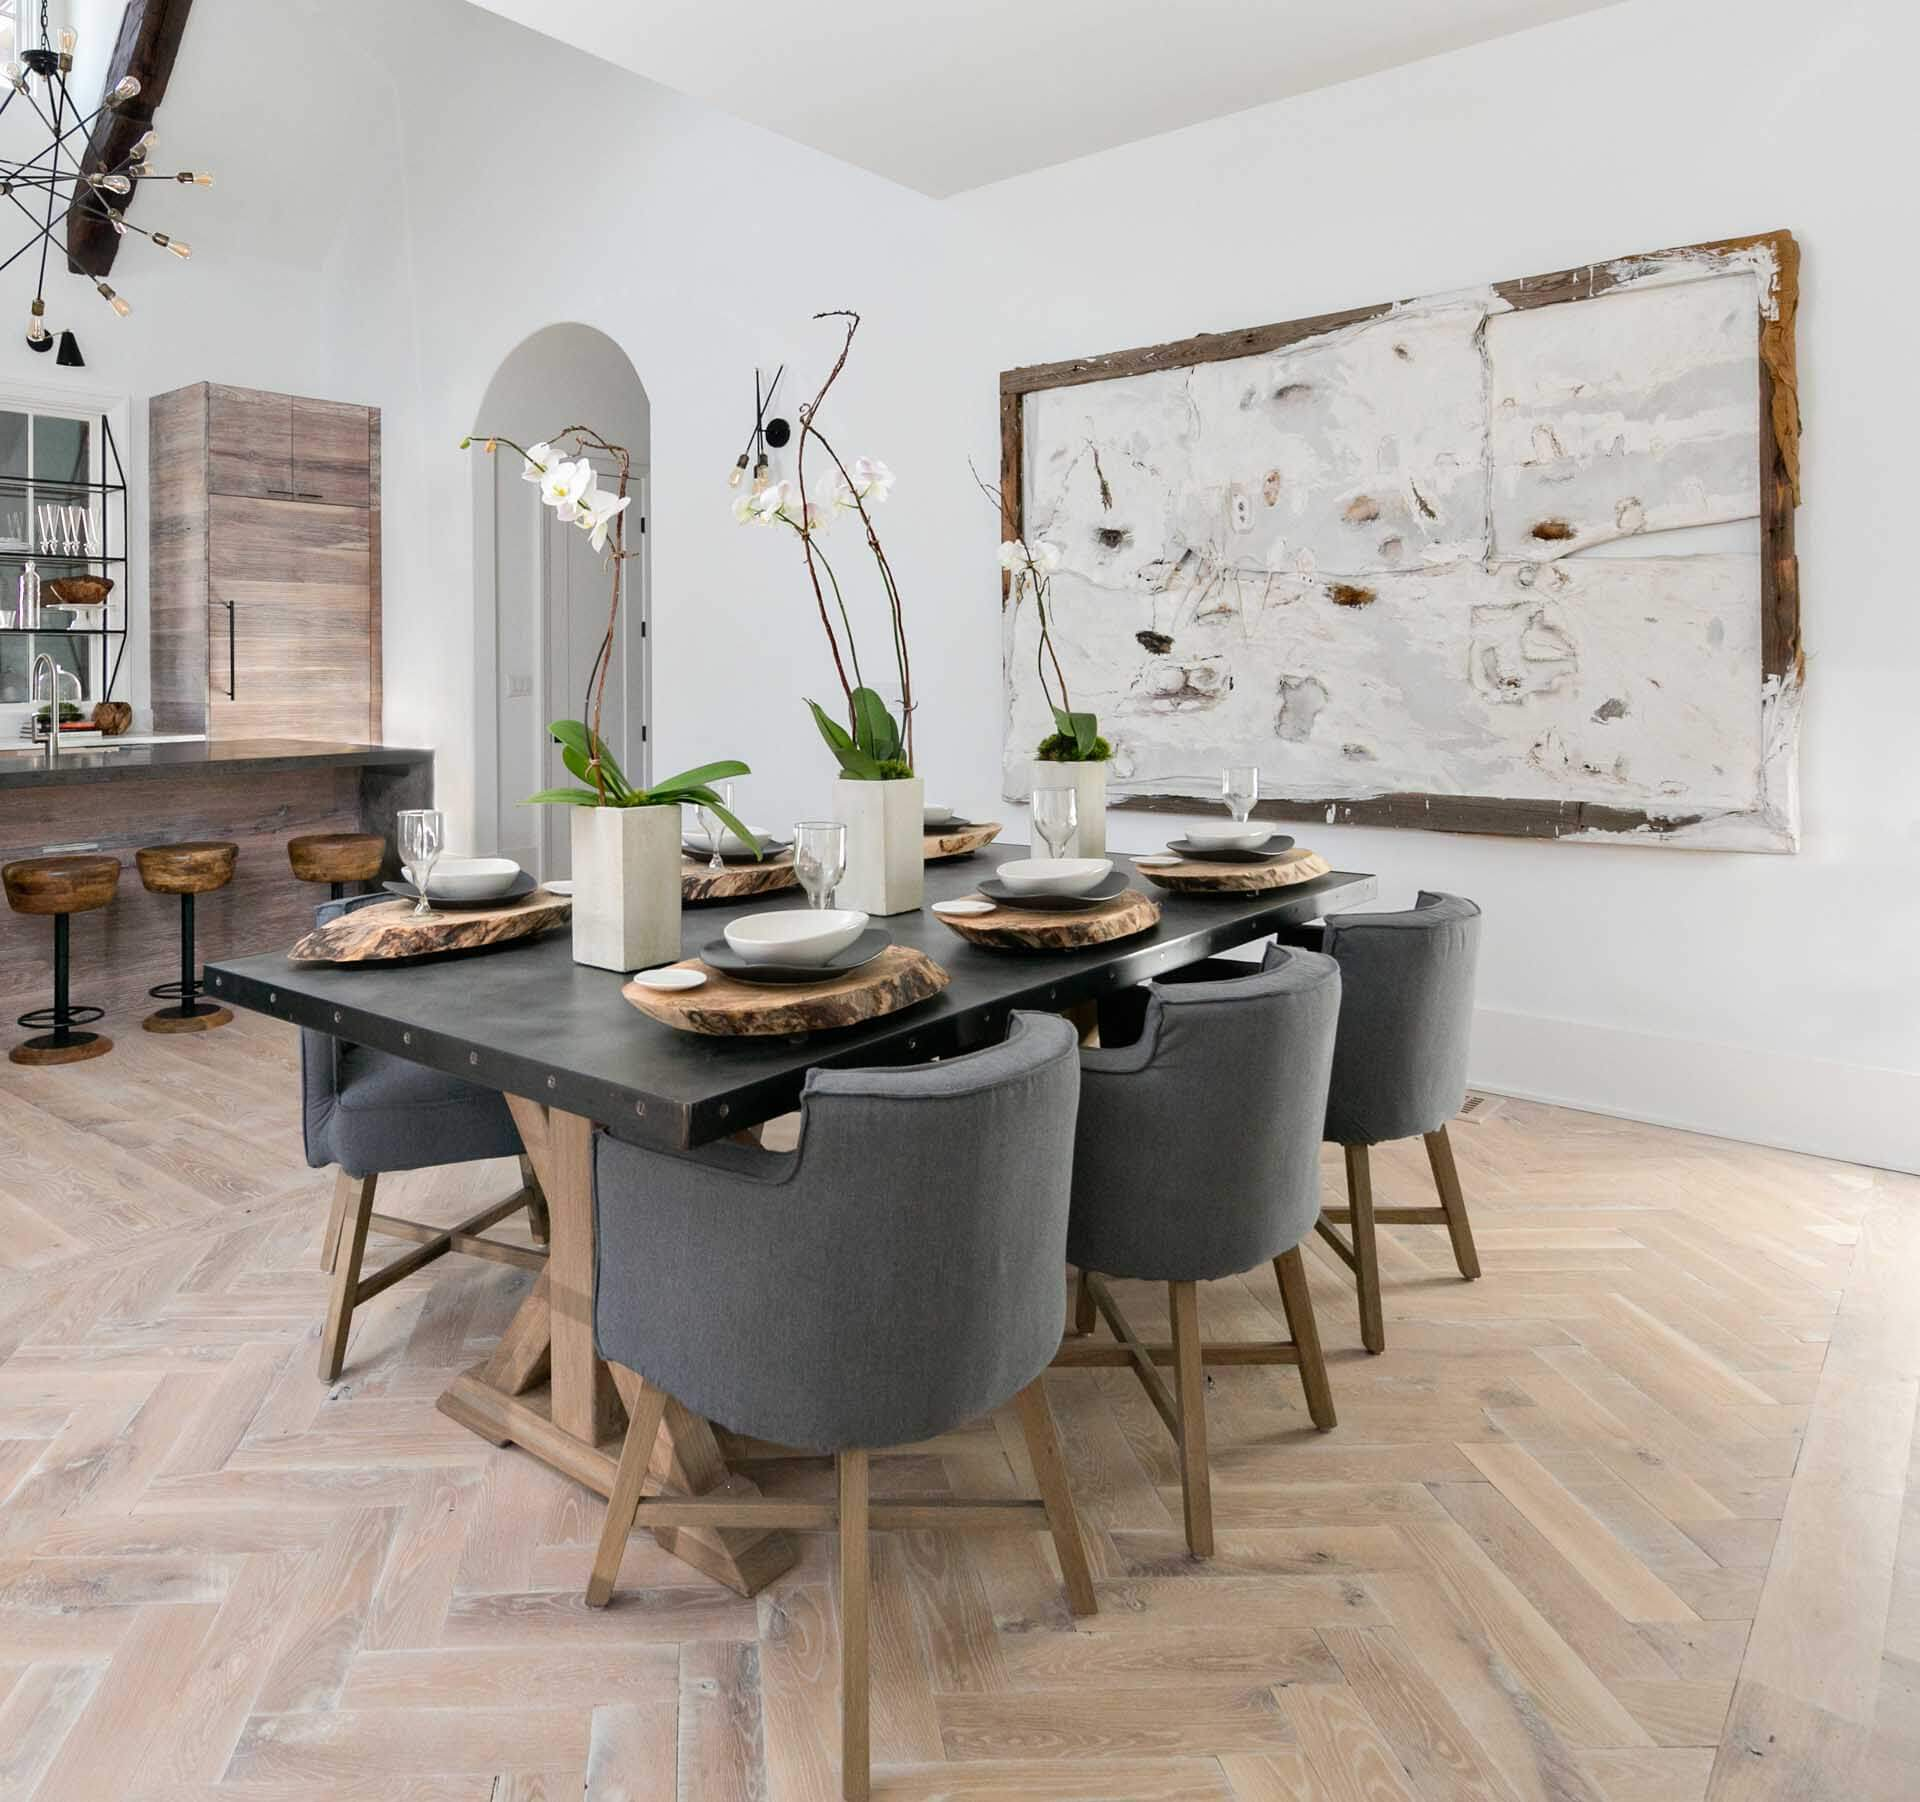 A dining area with herringbone hardwood flooring finished with a light matte wood finish.